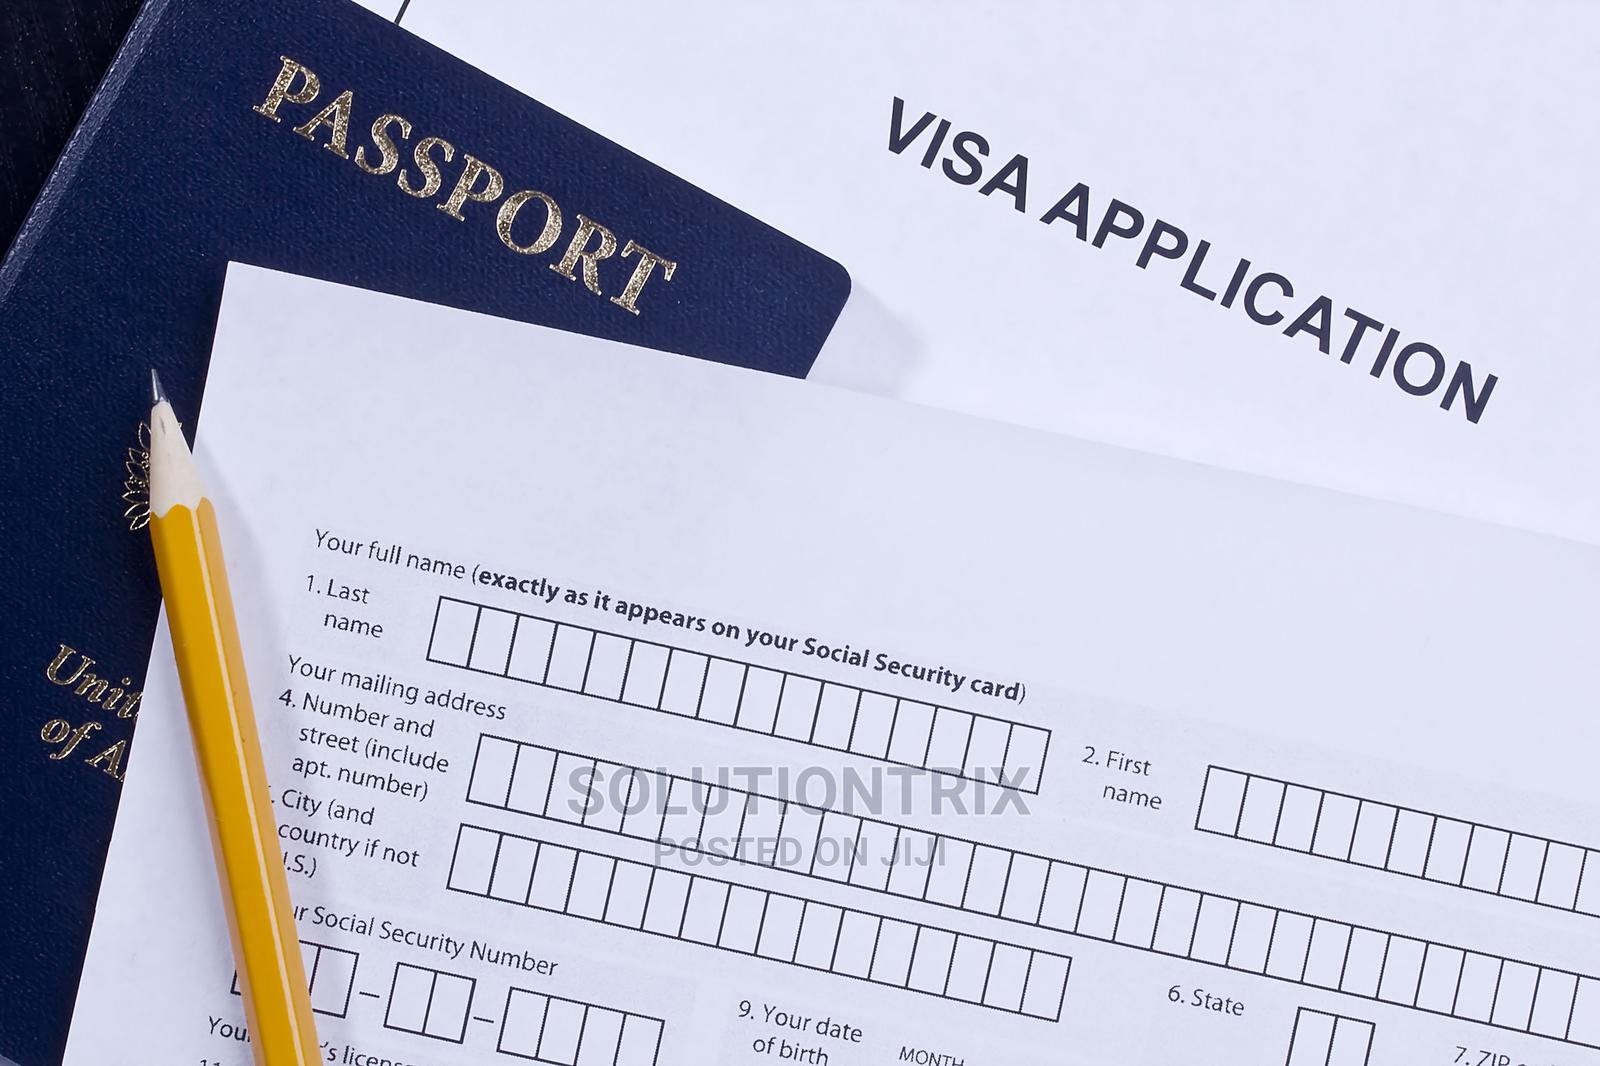 Archive: 100% Assured 3 Month USA Visa in 5 Days